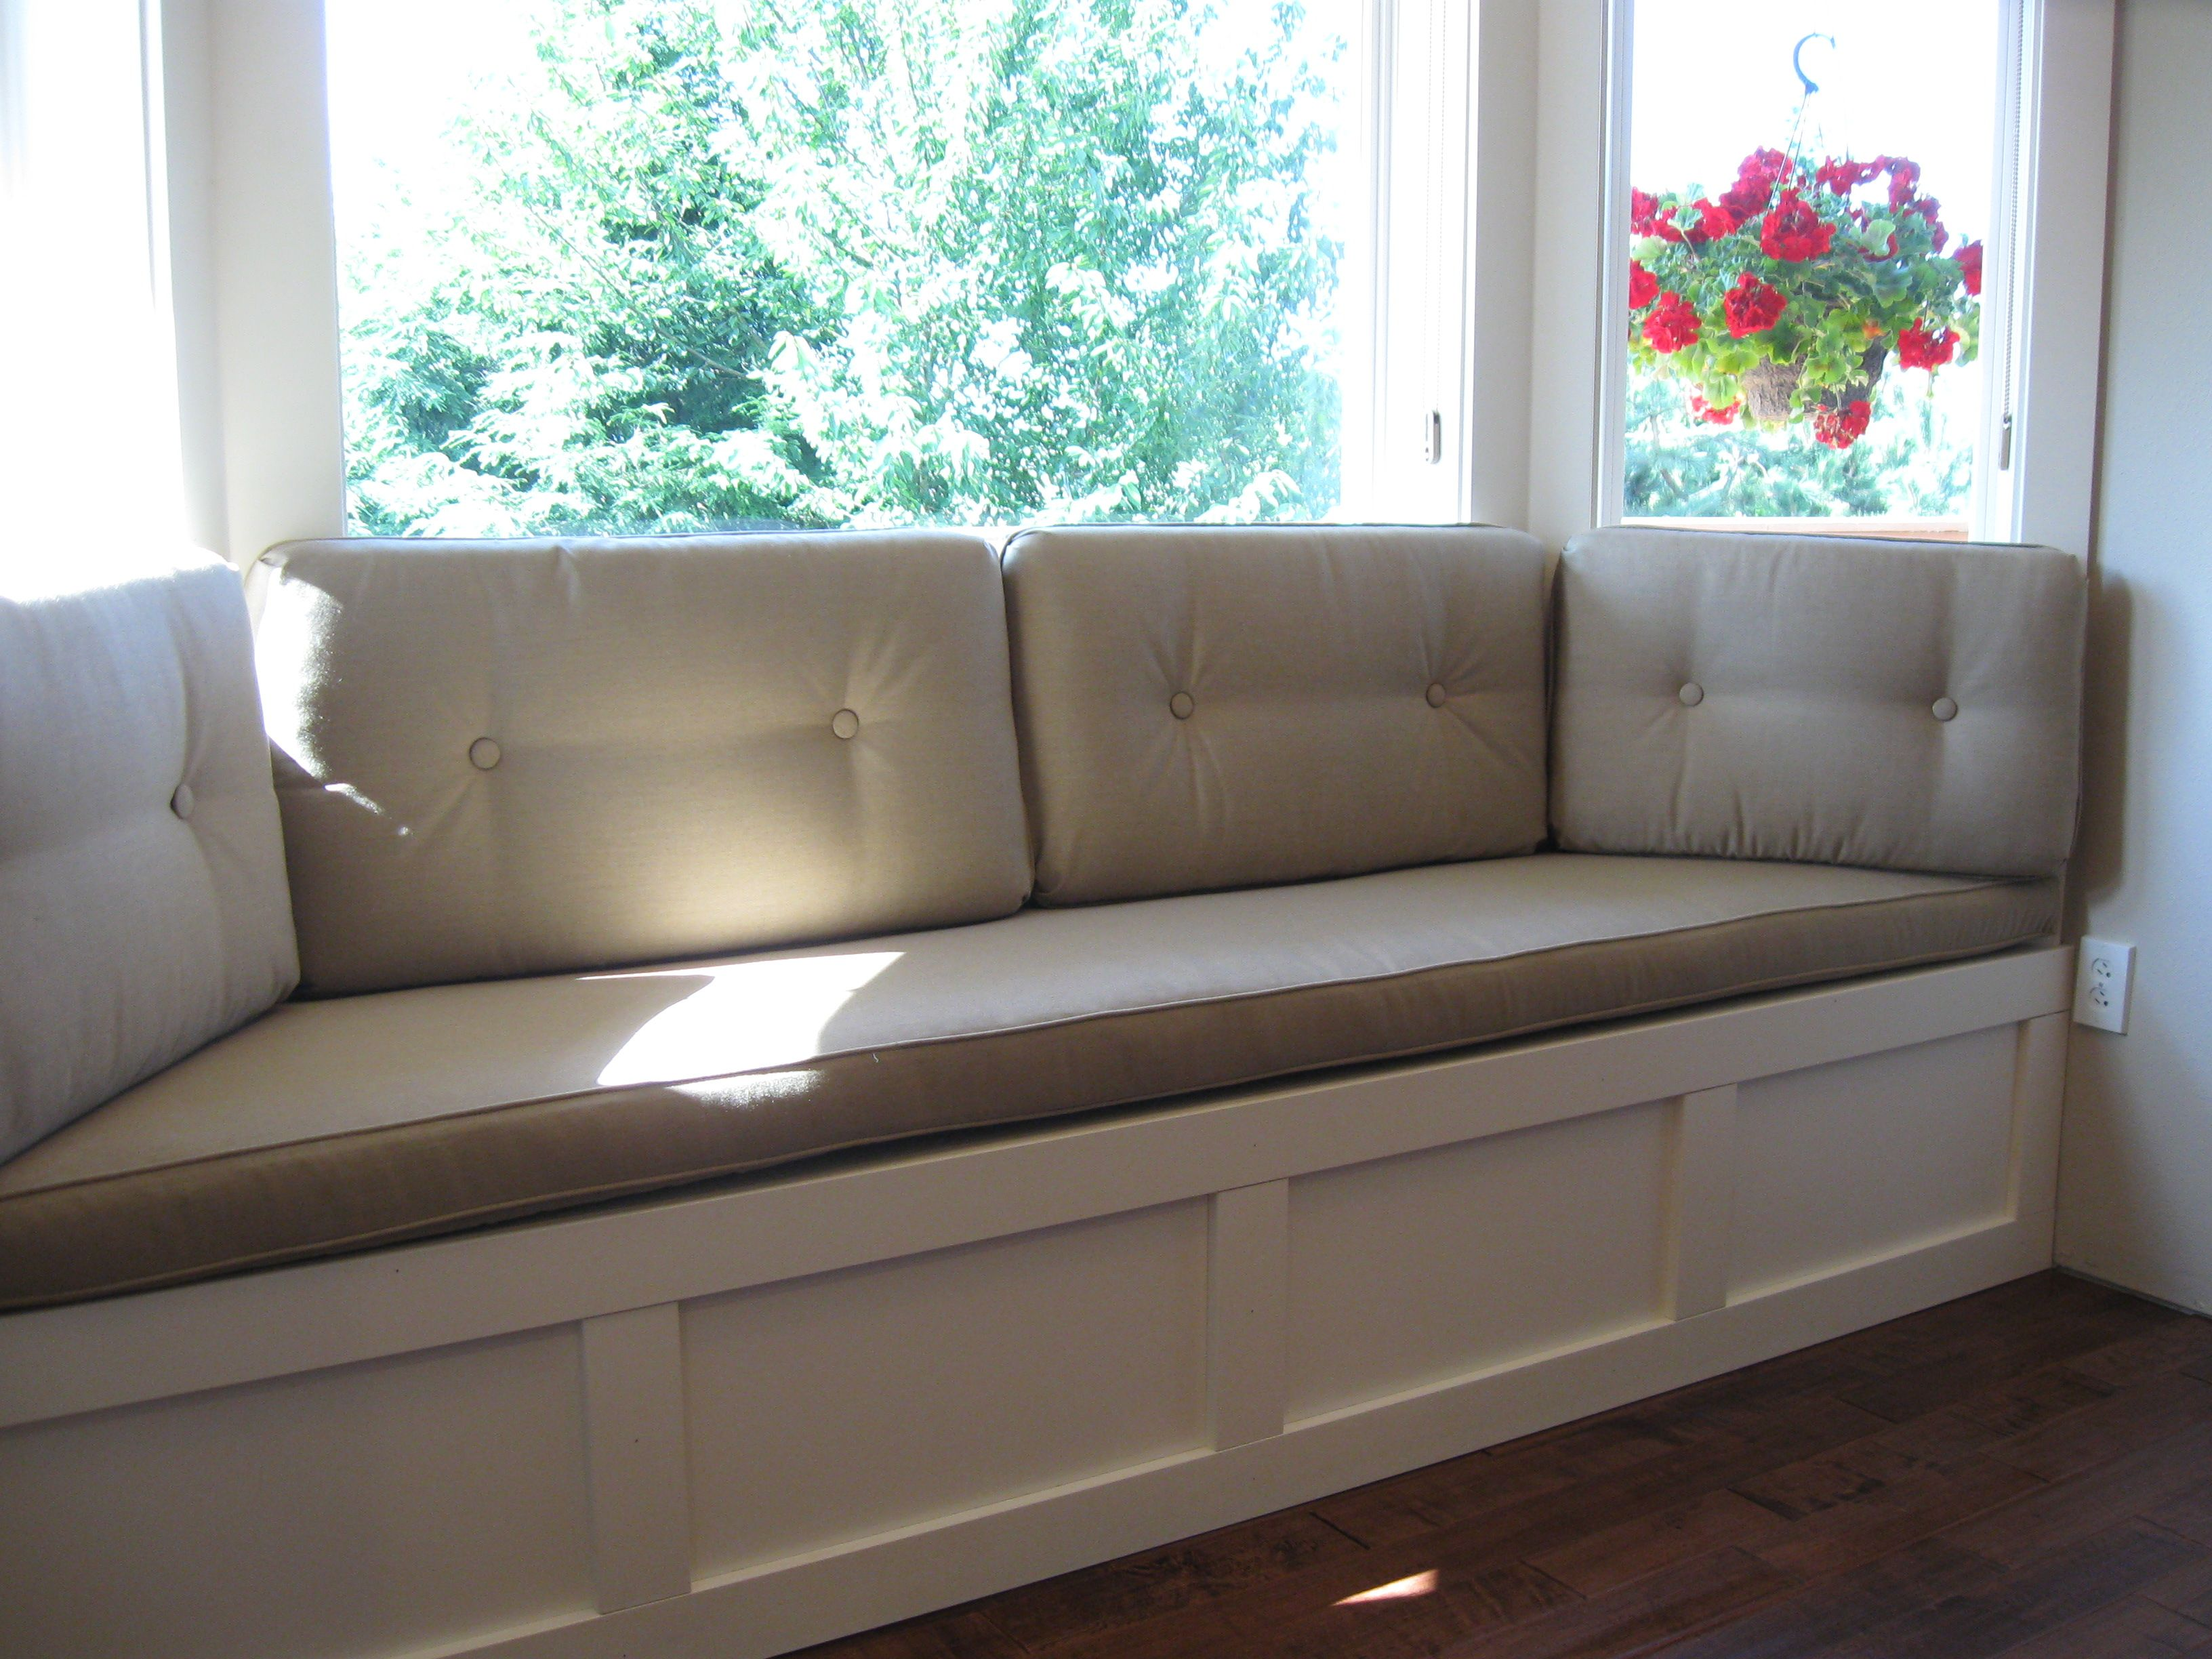 Window Seat Cushions | Window Seat Ideas 3264x2448 Seamstress Blog ...